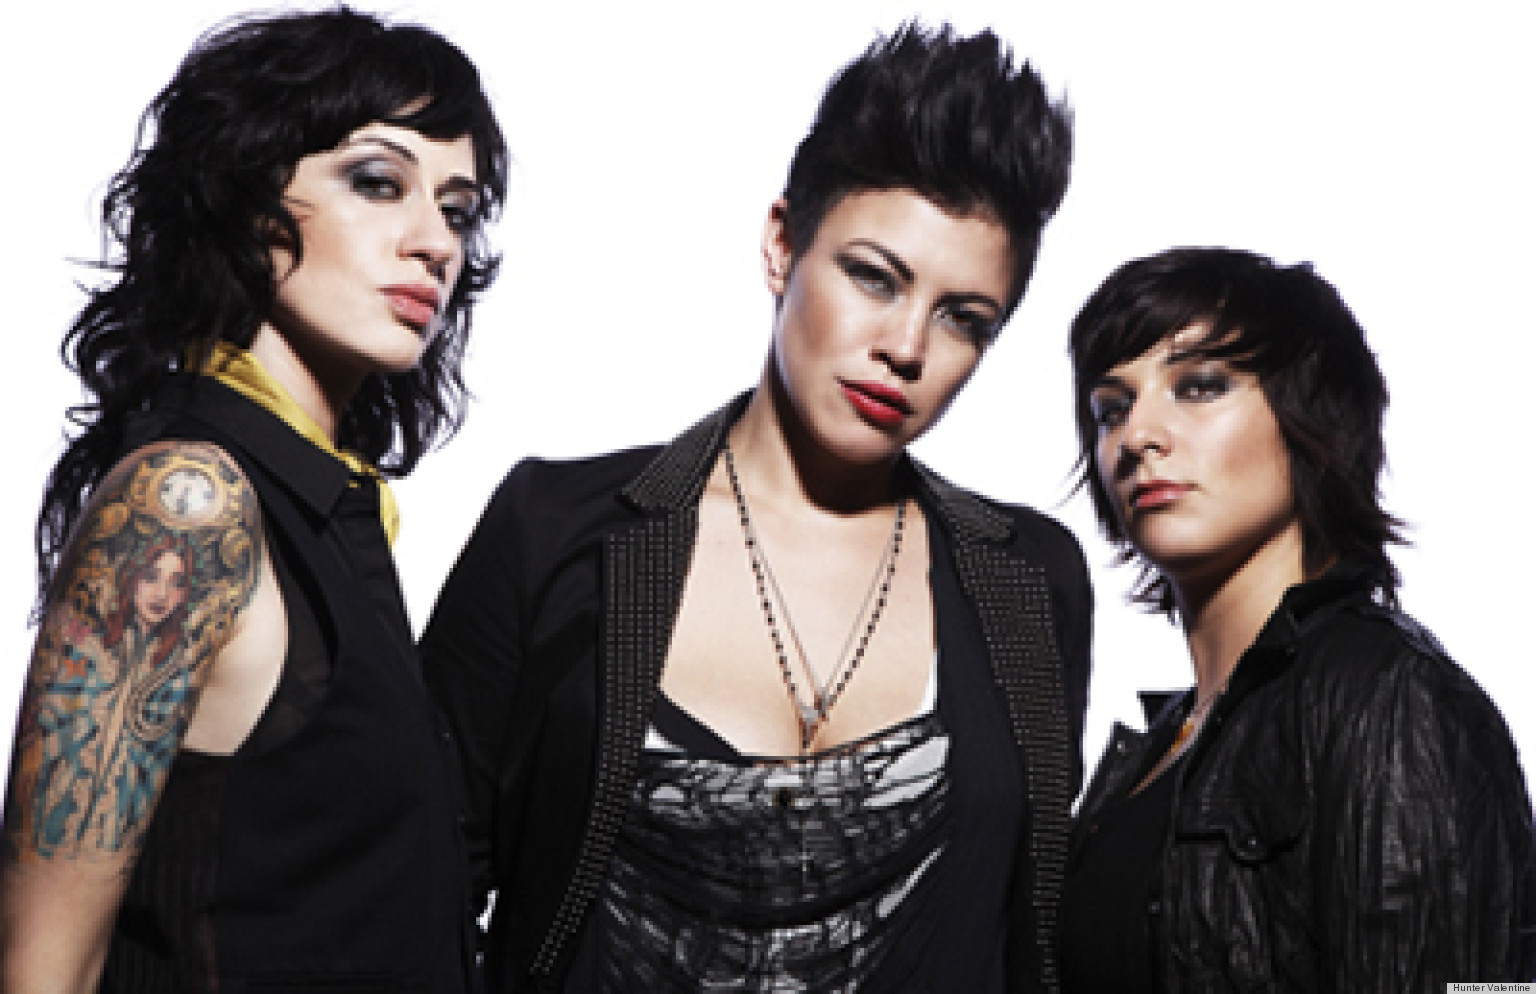 Schön Hunter Valentine, Lesbian Rock Band And Stars Of The Real L Word Season 3,  Talk Collide And Conquer And LGBT Issues (AUDIO) | HuffPost